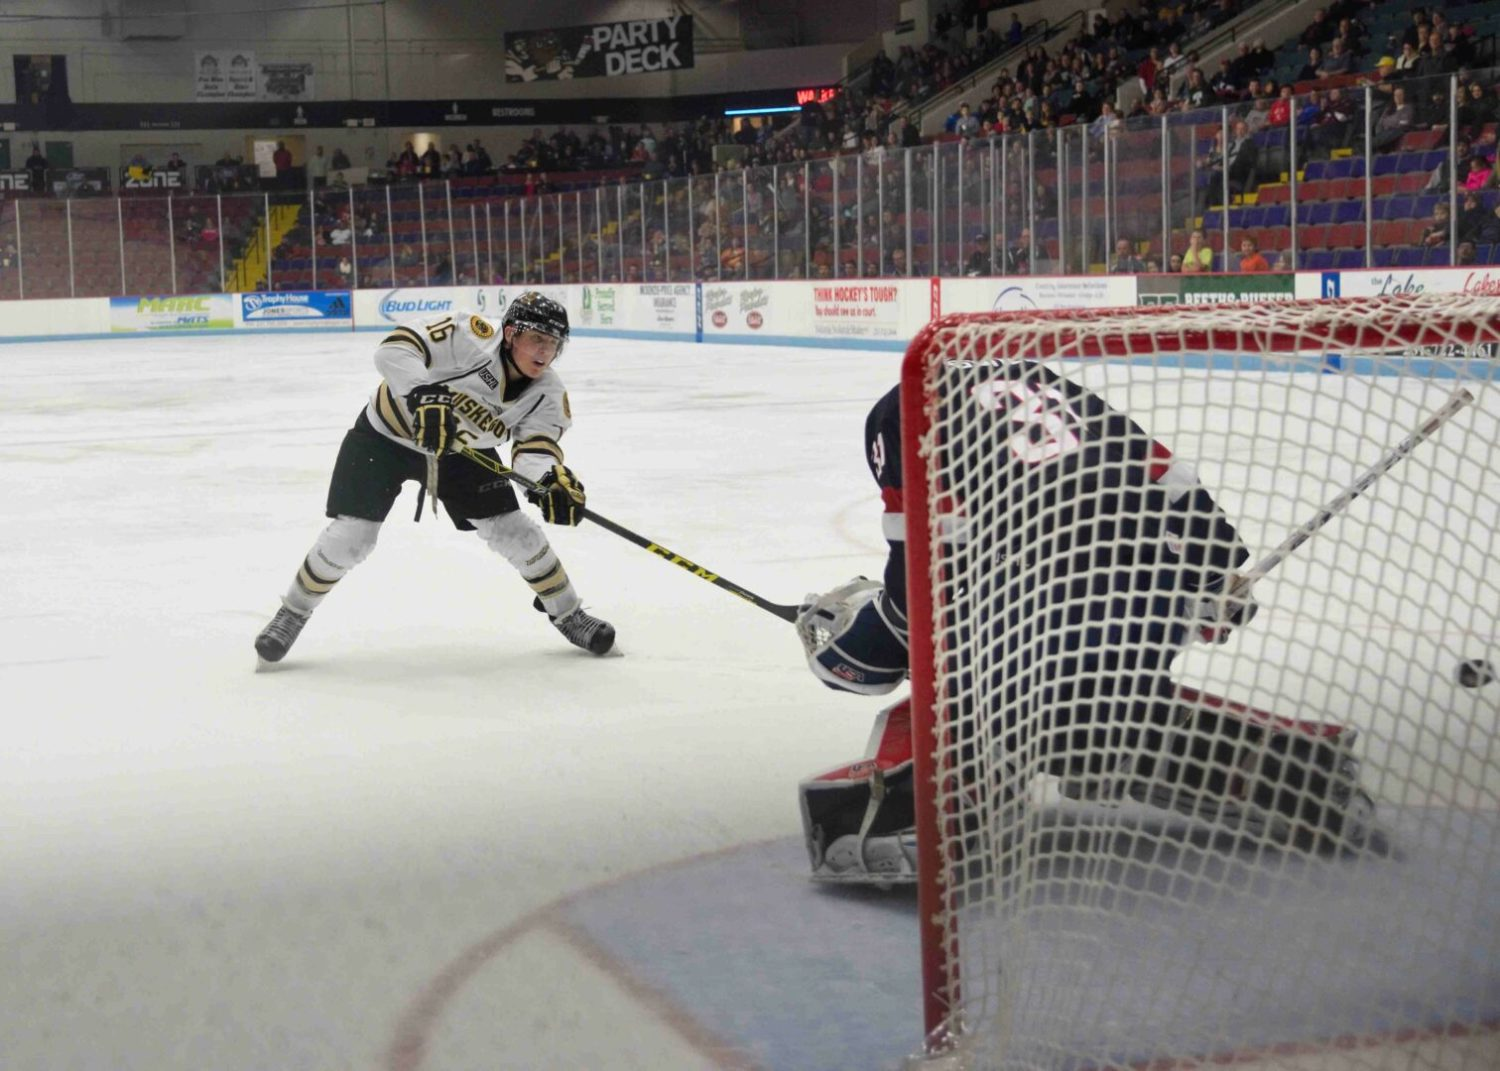 Lumberjacks' Rem Pitlick named USHL Player of the Year, Forward of the Year